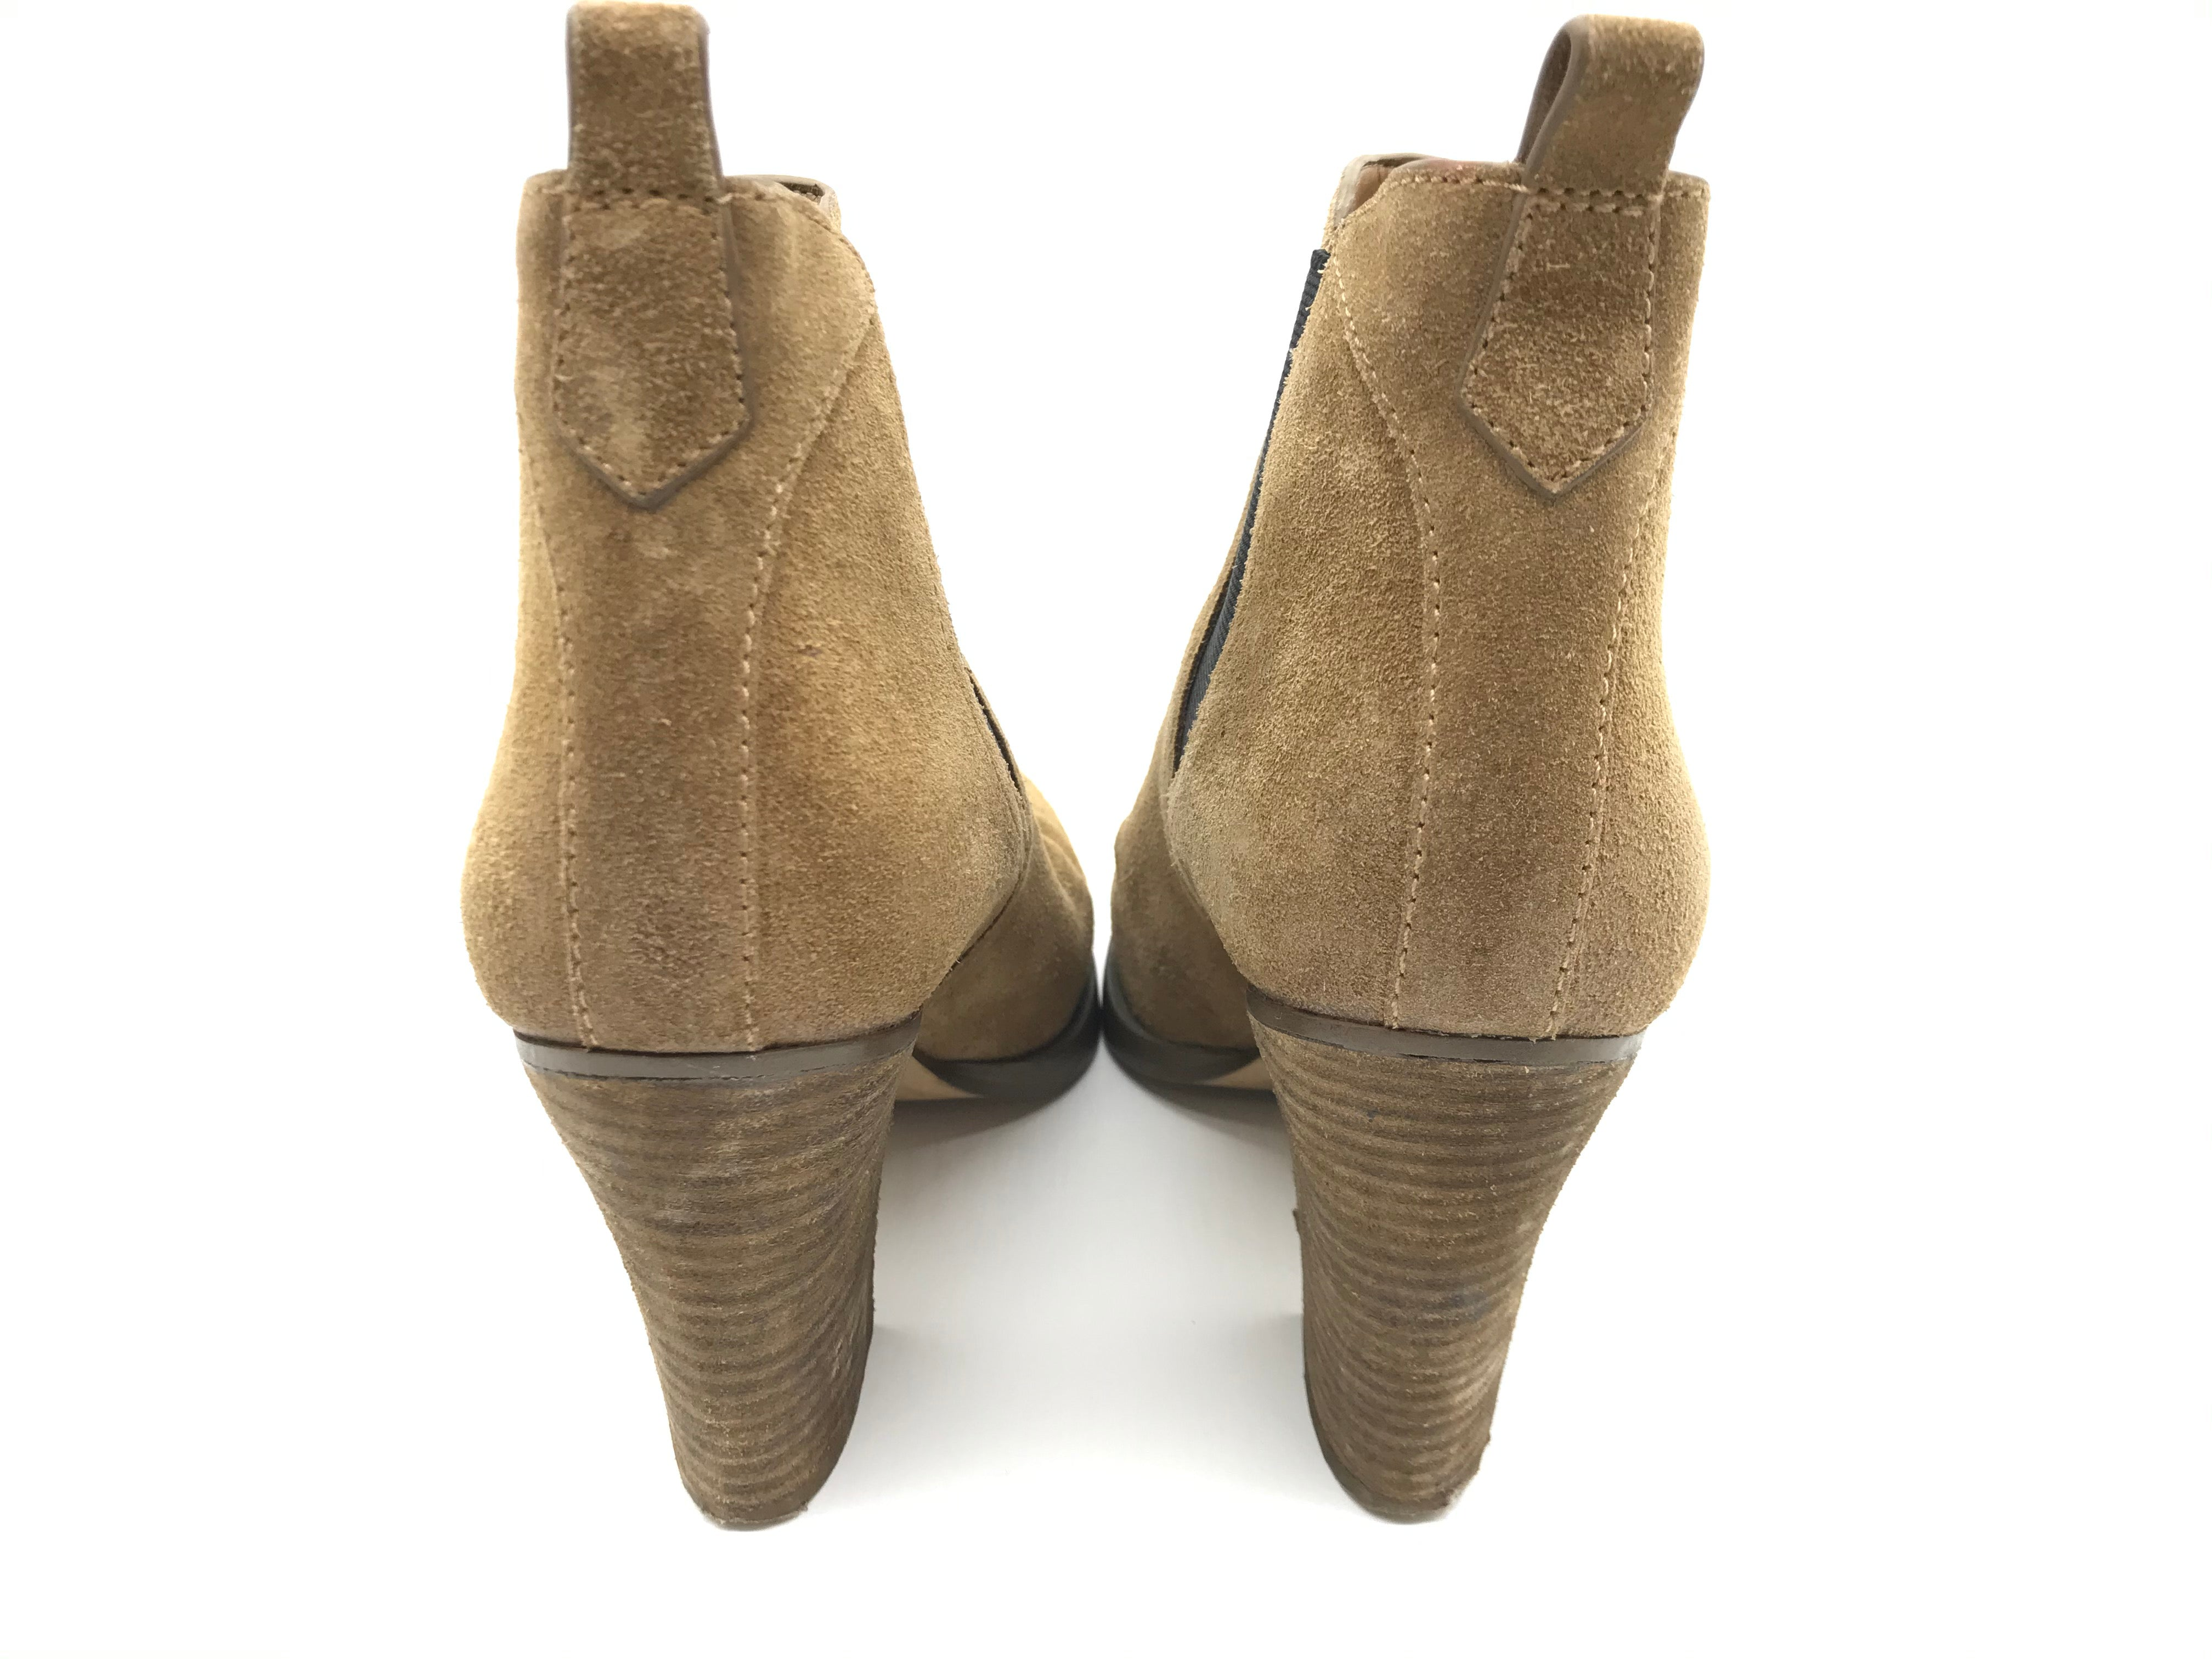 Boots Ankle By Marc Fisher  Size: 7 - BRAND: MARC FISHER <BR>STYLE: BOOTS ANKLE <BR>COLOR: BROWN <BR>SIZE: 7 <BR>SKU: 262-262101-1906<BR>SLIGHT SCRATH ON TOE AREA • GENTLE WEAR SHOWS • GENTLE TEAR IN THE INTERIOR LINING • GENTLE SCUFFS ON THE OUTSOLES •